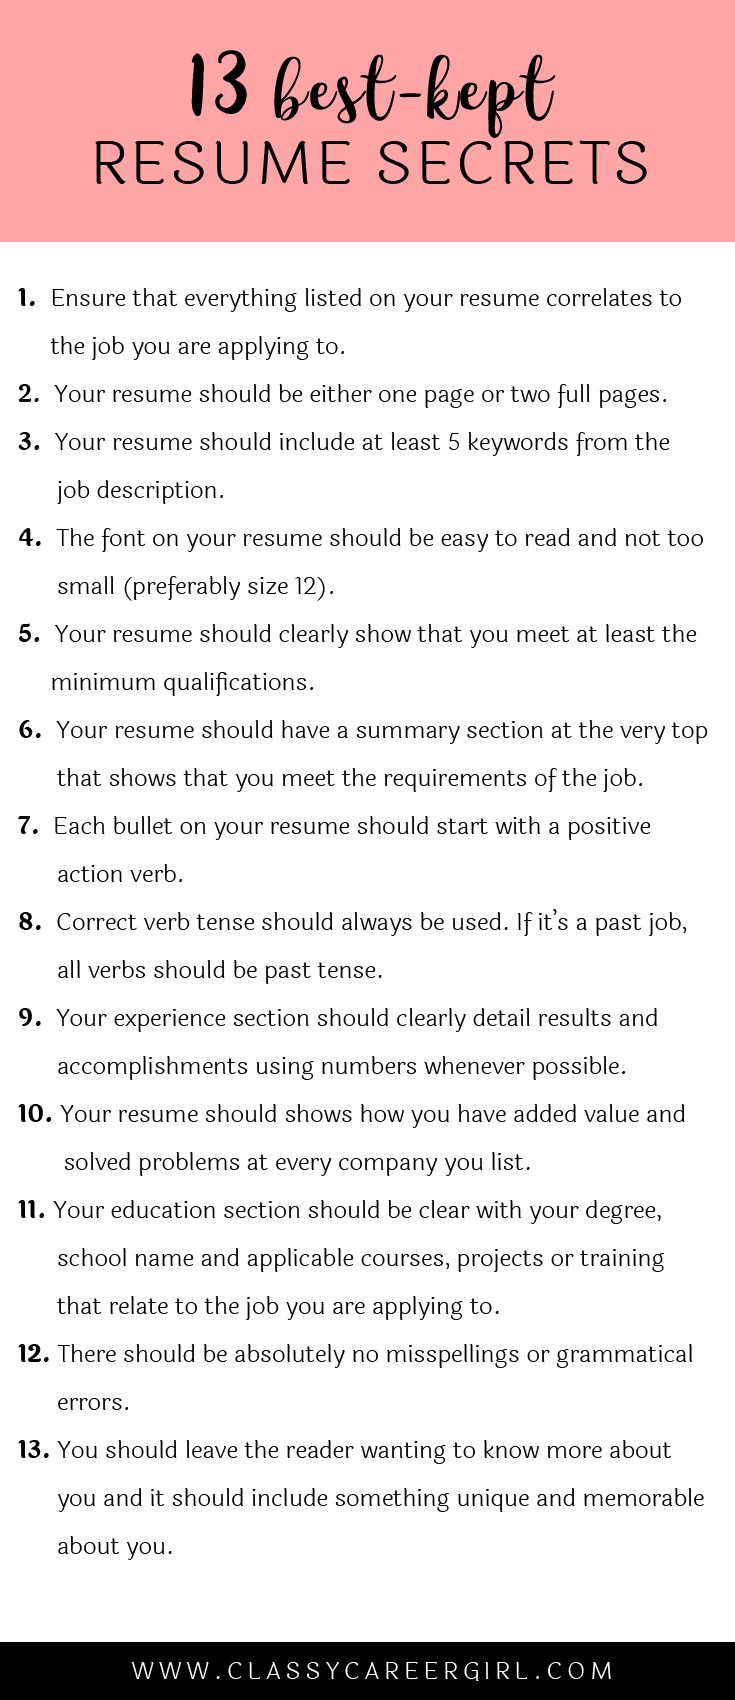 Opposenewapstandardsus  Gorgeous  Ideas About Resume On Pinterest  Cv Format Resume Cv And  With Inspiring Some Hiring Managers Will Toss Your Resume Out If You Dont Know These  With Cool Sample Resume Doc Also Resume Screening Software In Addition Resume Builders For Free And Waiter Job Description Resume As Well As Pay Someone To Write My Resume Additionally Resume Format Free From Pinterestcom With Opposenewapstandardsus  Inspiring  Ideas About Resume On Pinterest  Cv Format Resume Cv And  With Cool Some Hiring Managers Will Toss Your Resume Out If You Dont Know These  And Gorgeous Sample Resume Doc Also Resume Screening Software In Addition Resume Builders For Free From Pinterestcom